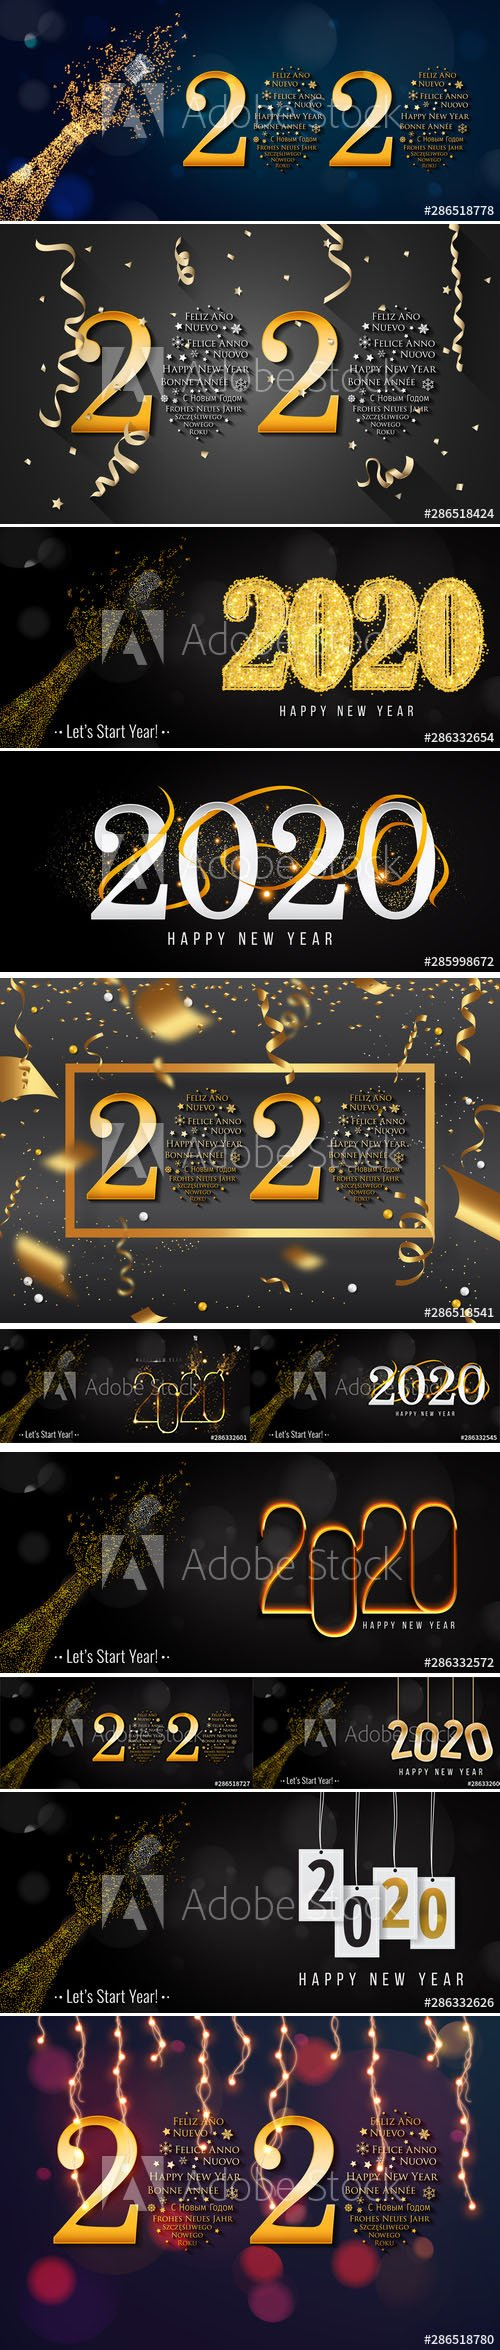 2020 Happy New Year Greeting Card and New Year AI Background vol.2